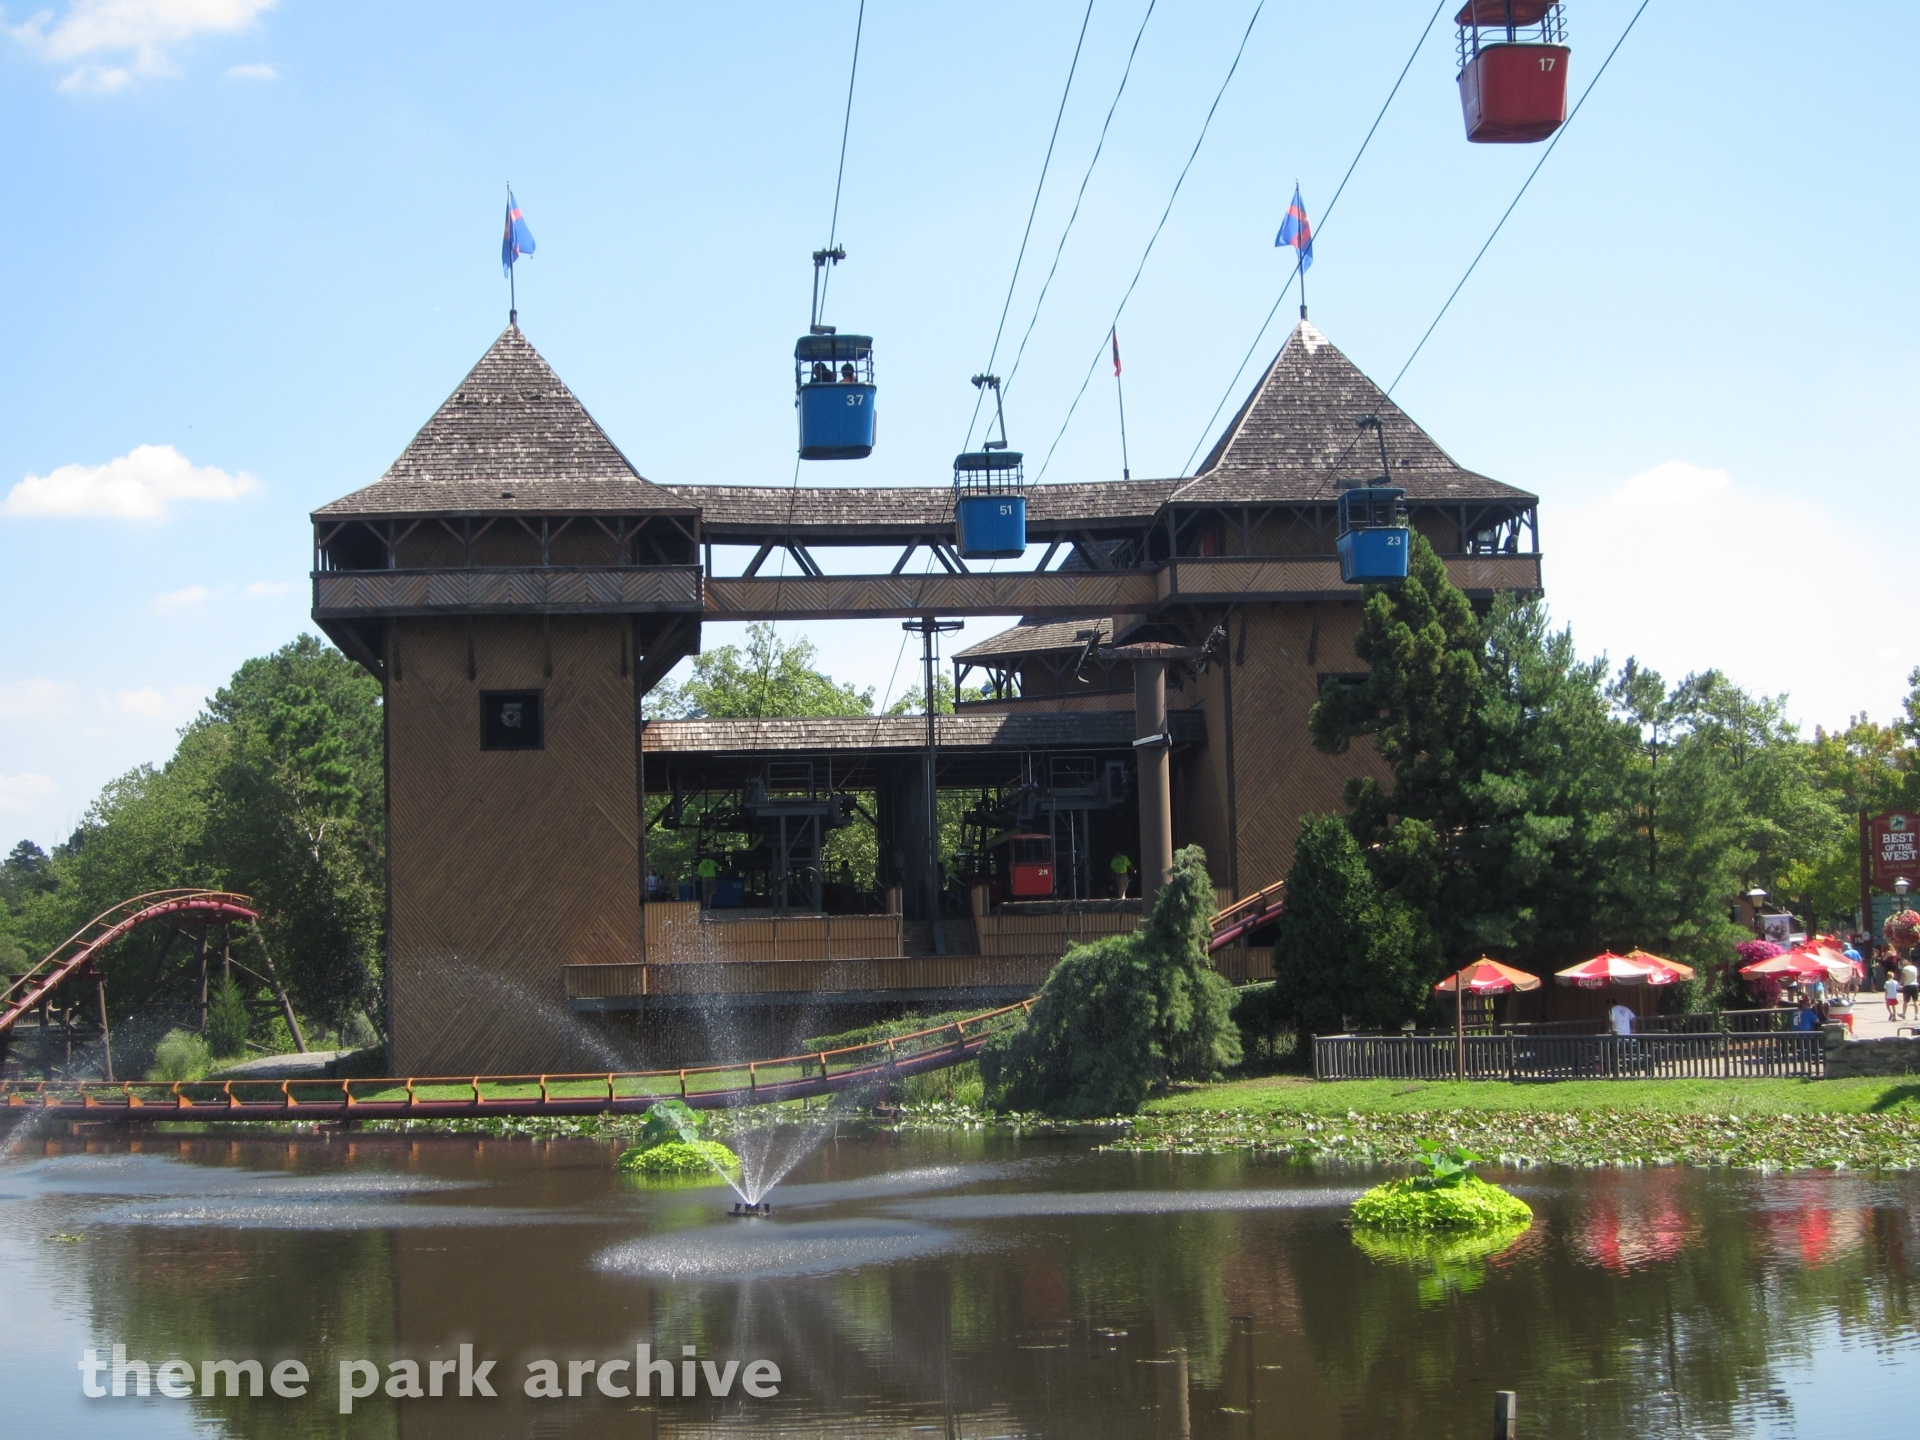 Skyway at Six Flags Great Adventure